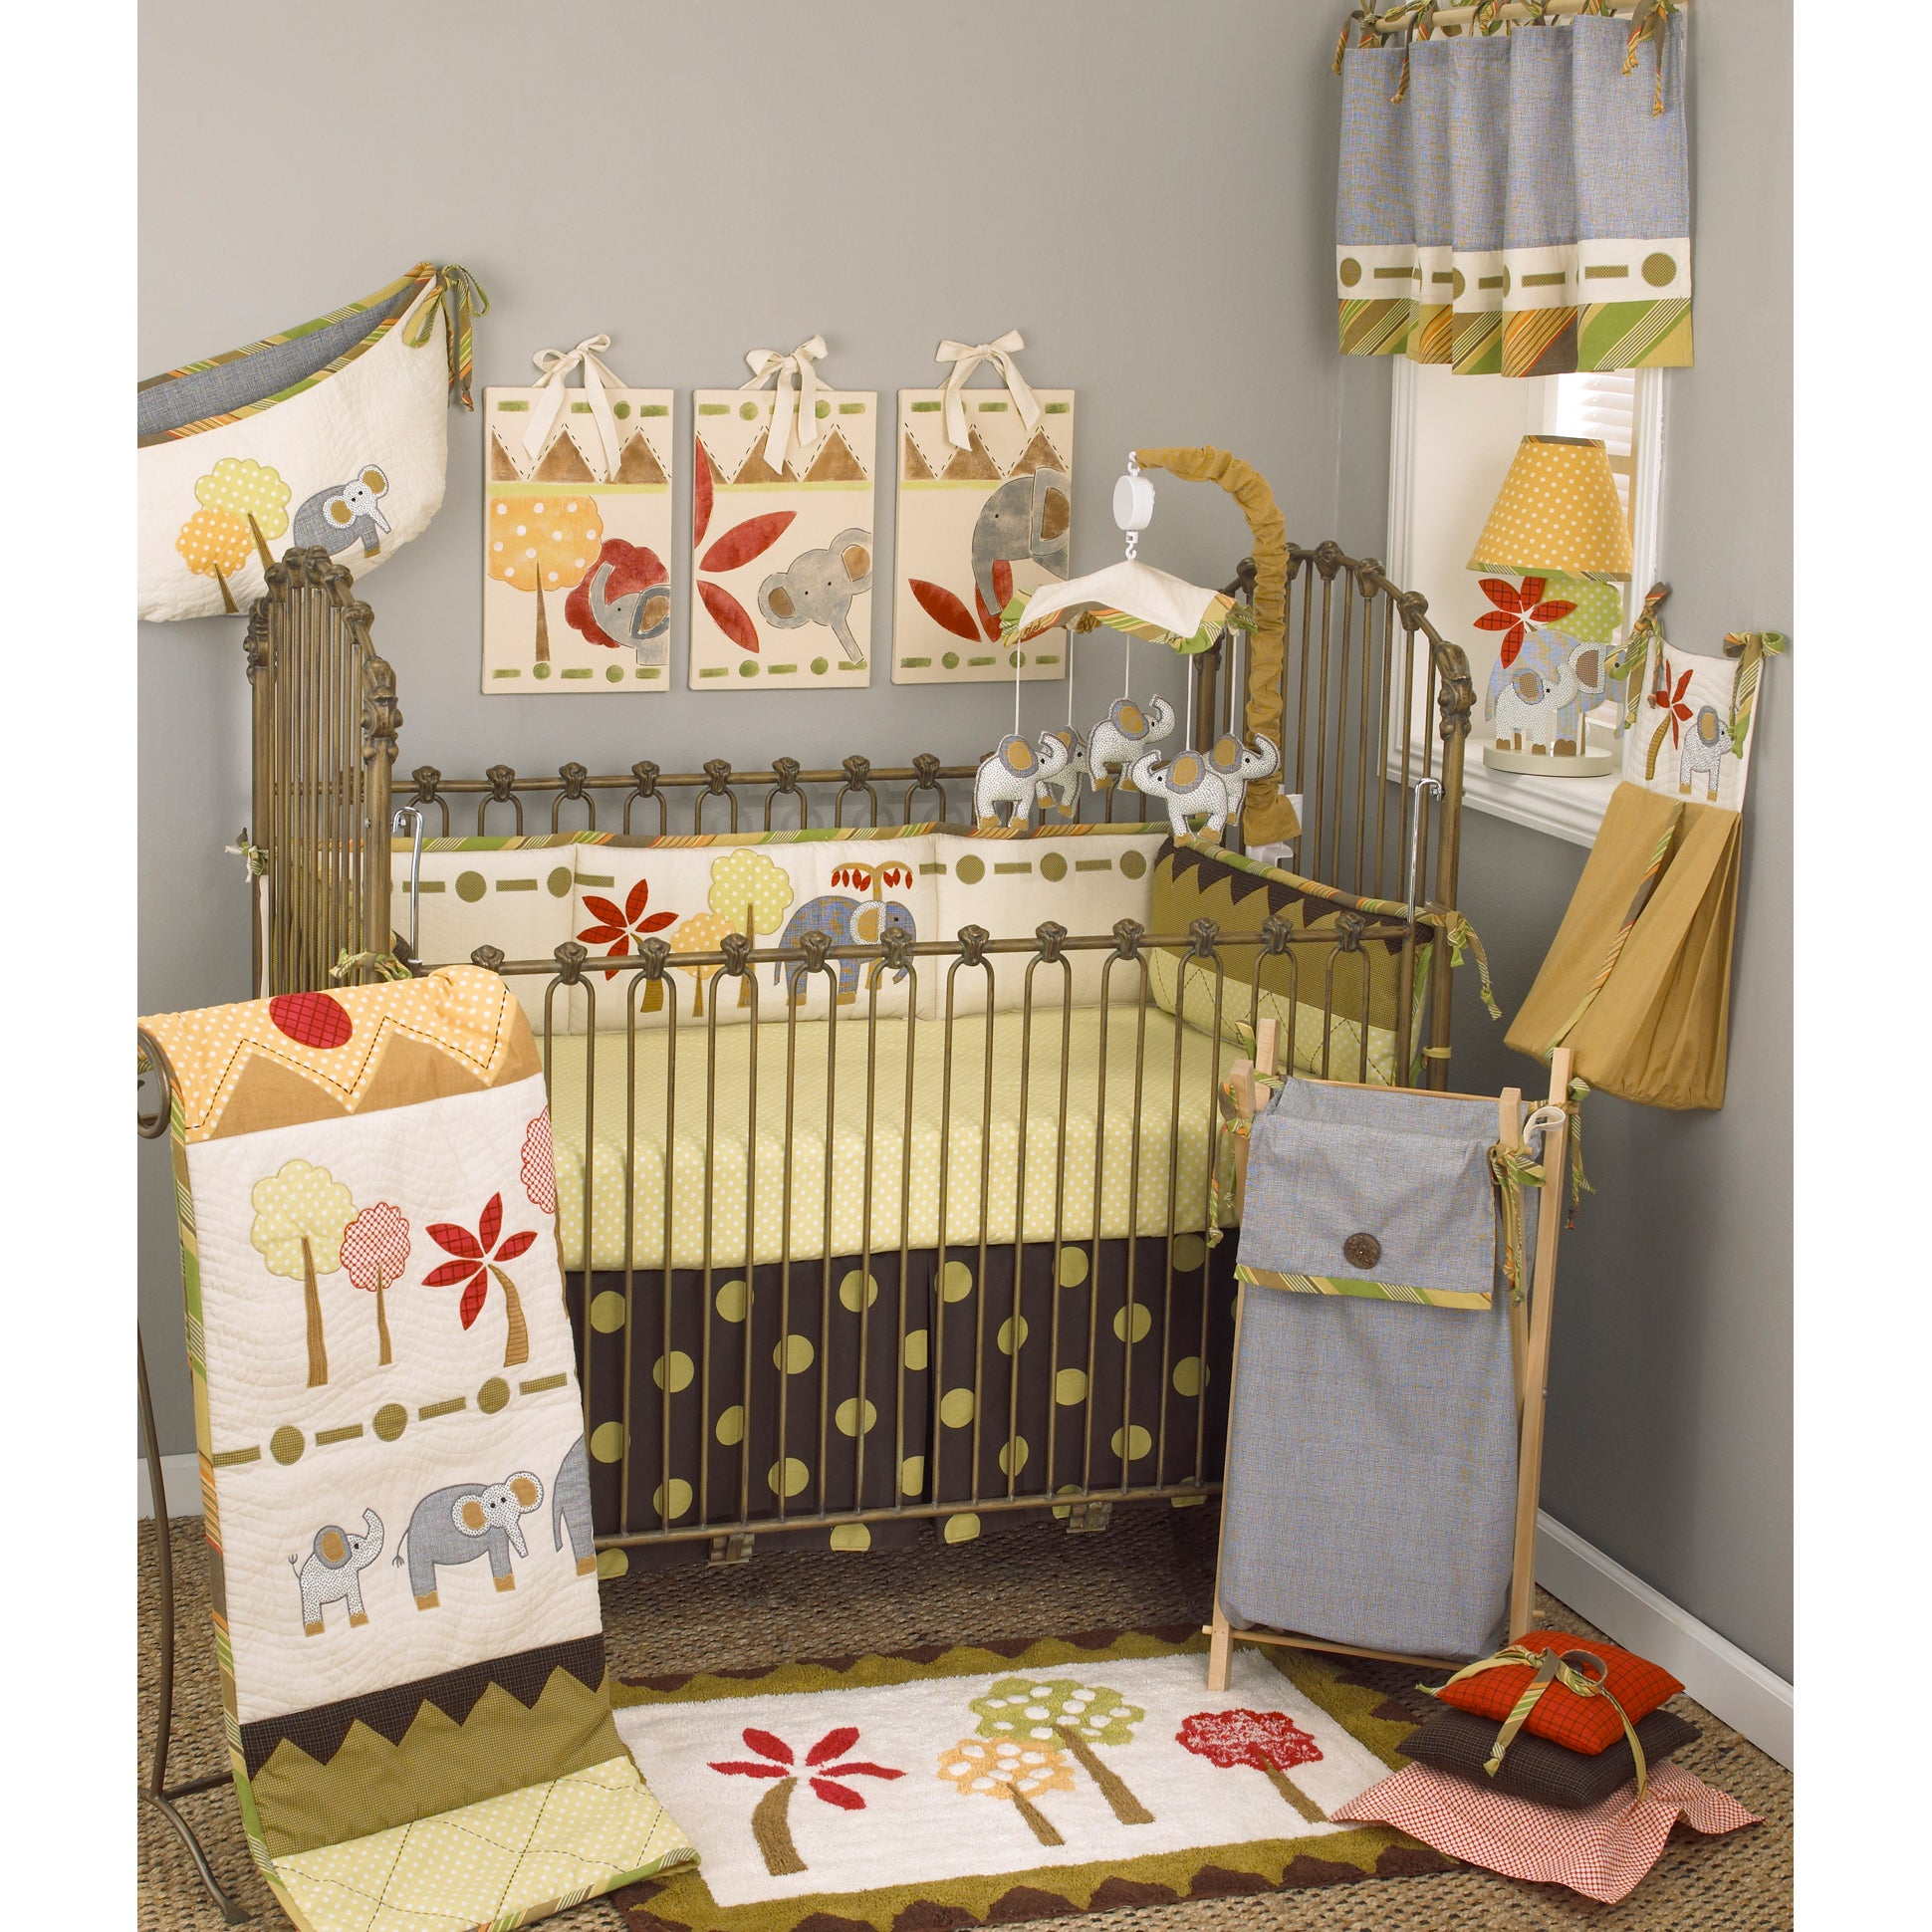 Cotton Tale Elephant Brigade 8-piece Crib Bedding Set (Co...